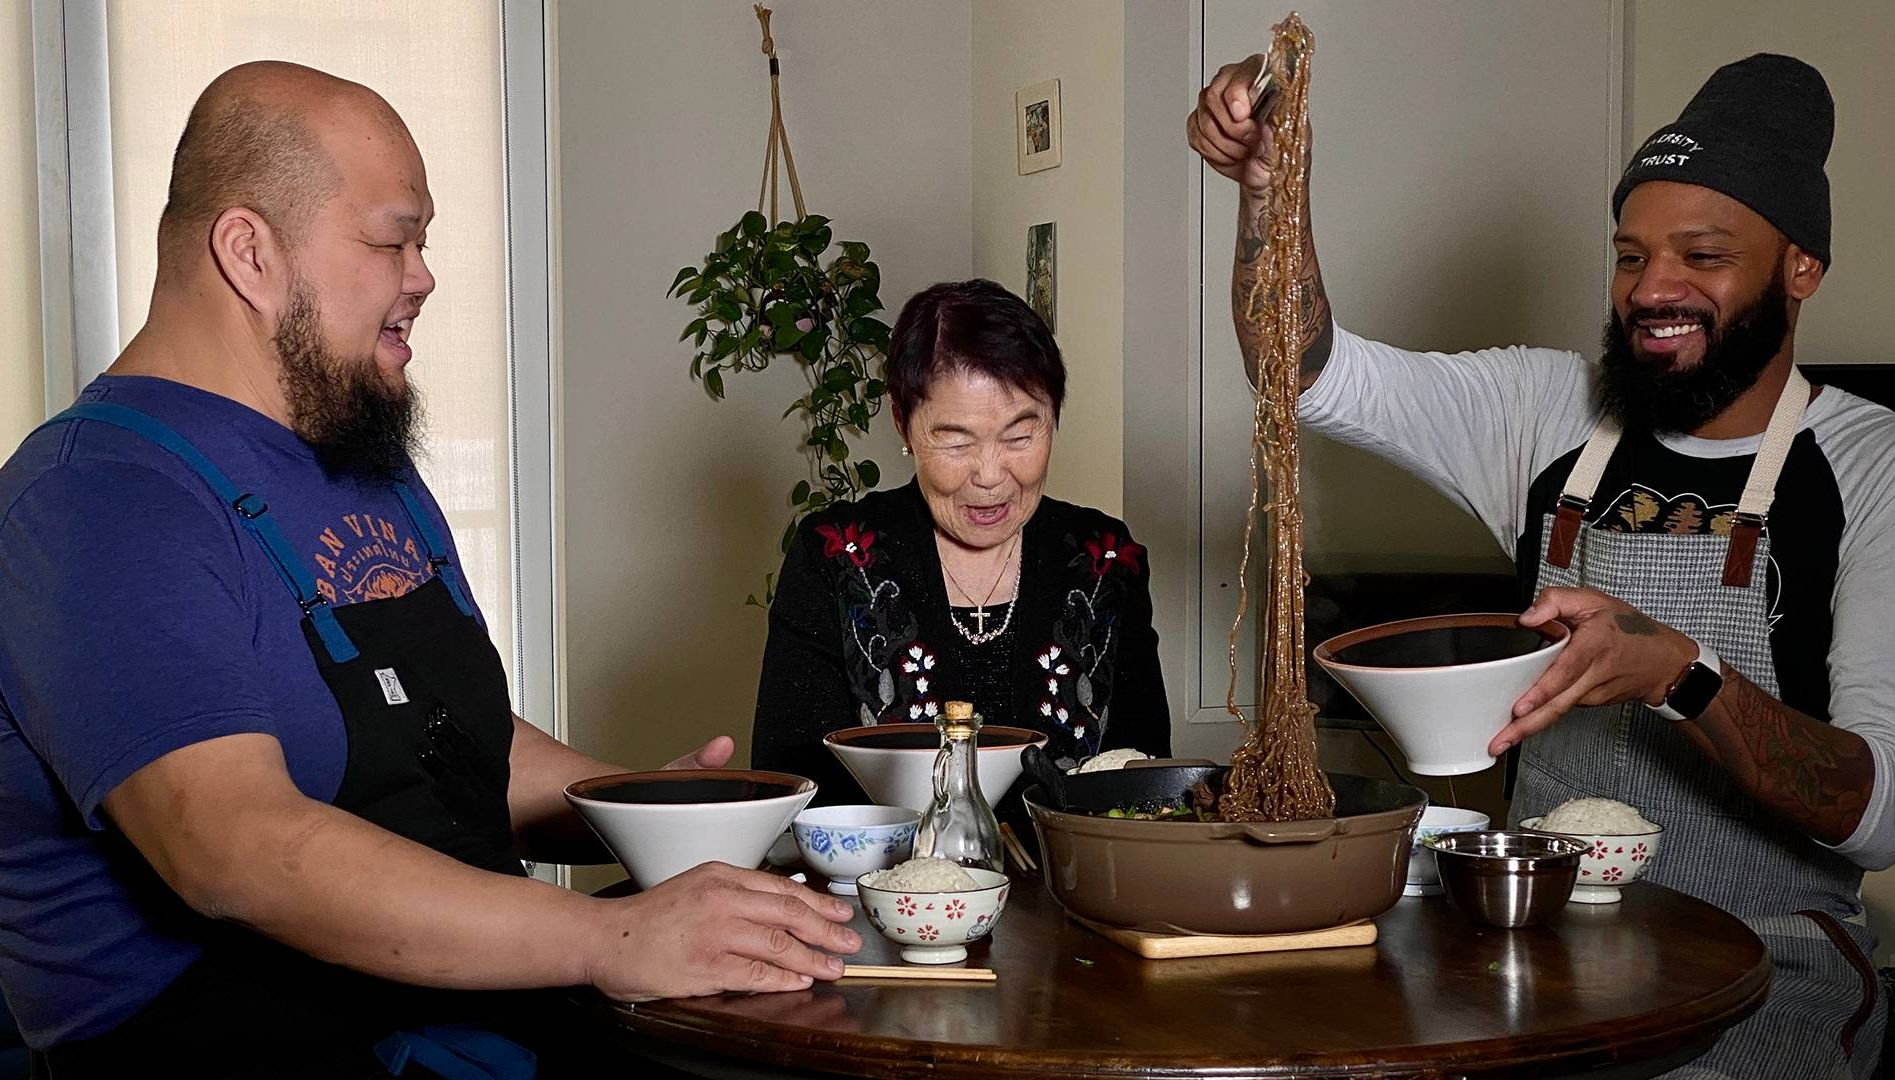 Chef Yia Vang, Justin Sutherland and Sutherland's grandmother sit around a table and enjoy a noodle dish. Rewire PBS Living One-pot meals